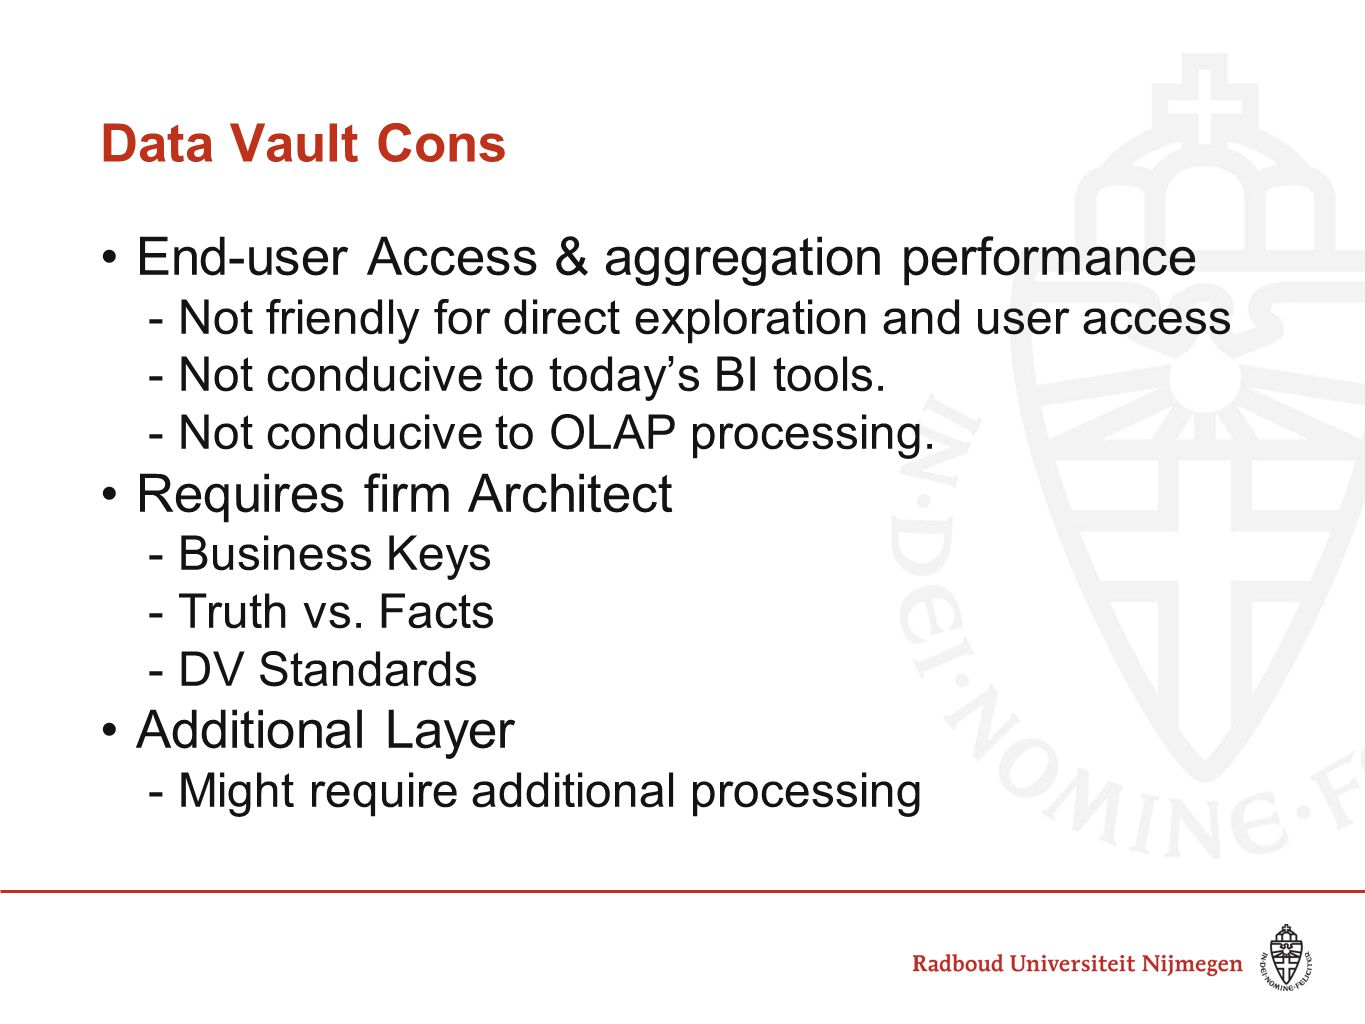 End-user Access & aggregation performance